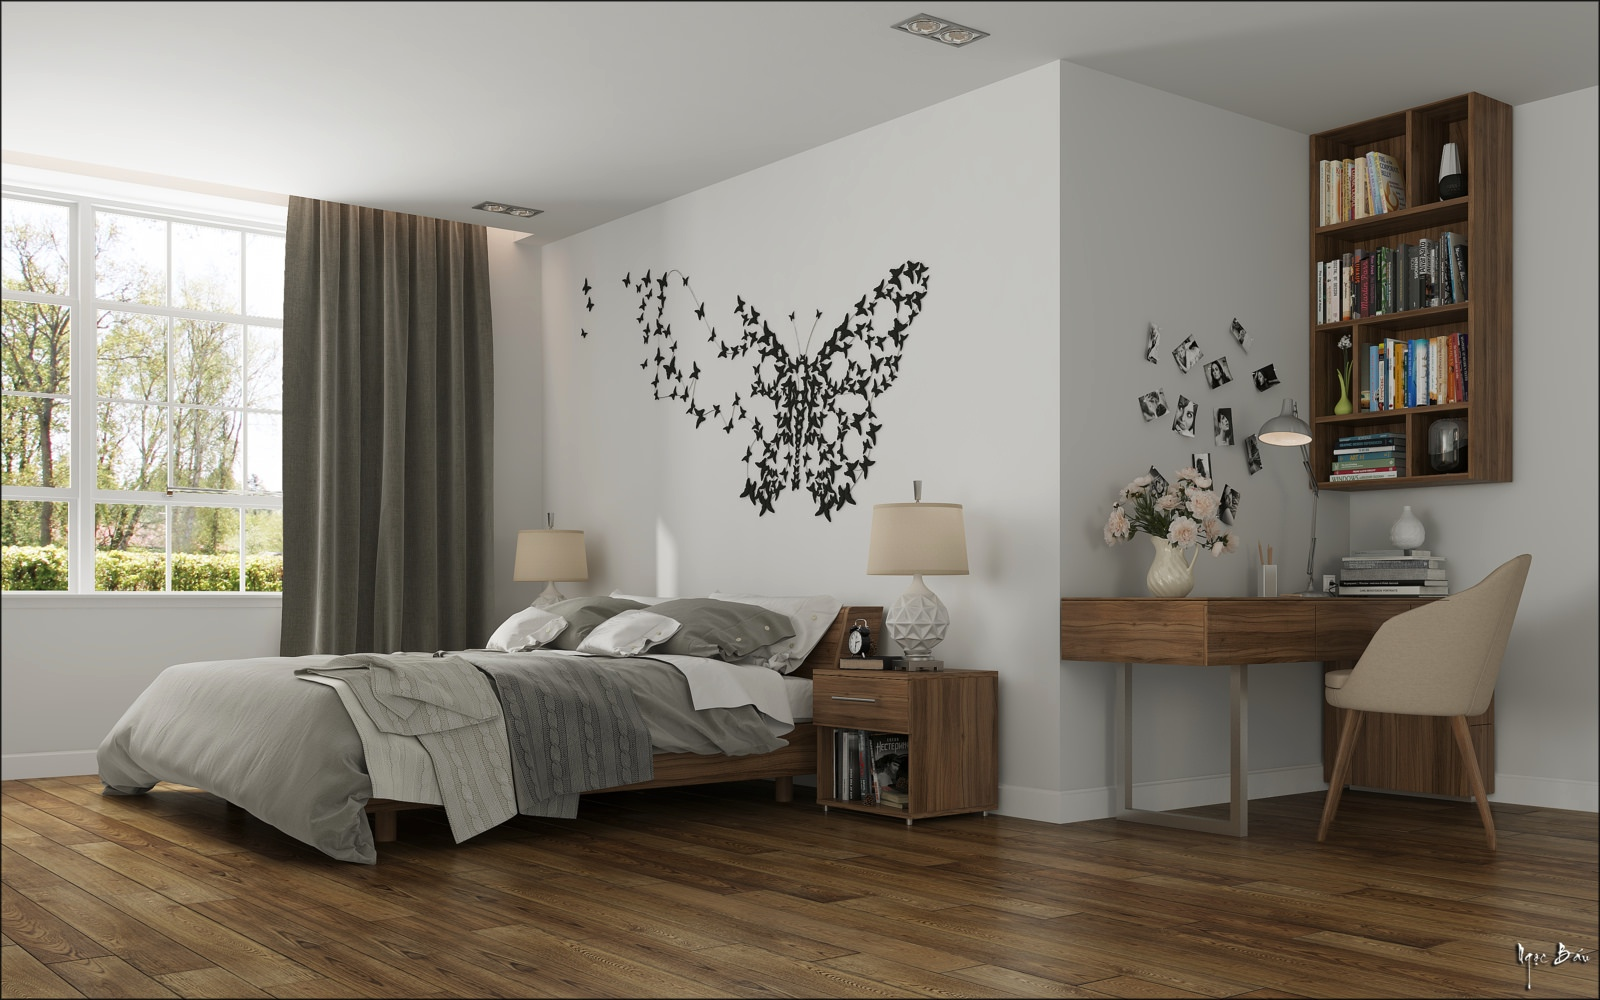 Bedroom butterfly wall art interior design ideas Bedroom wall art